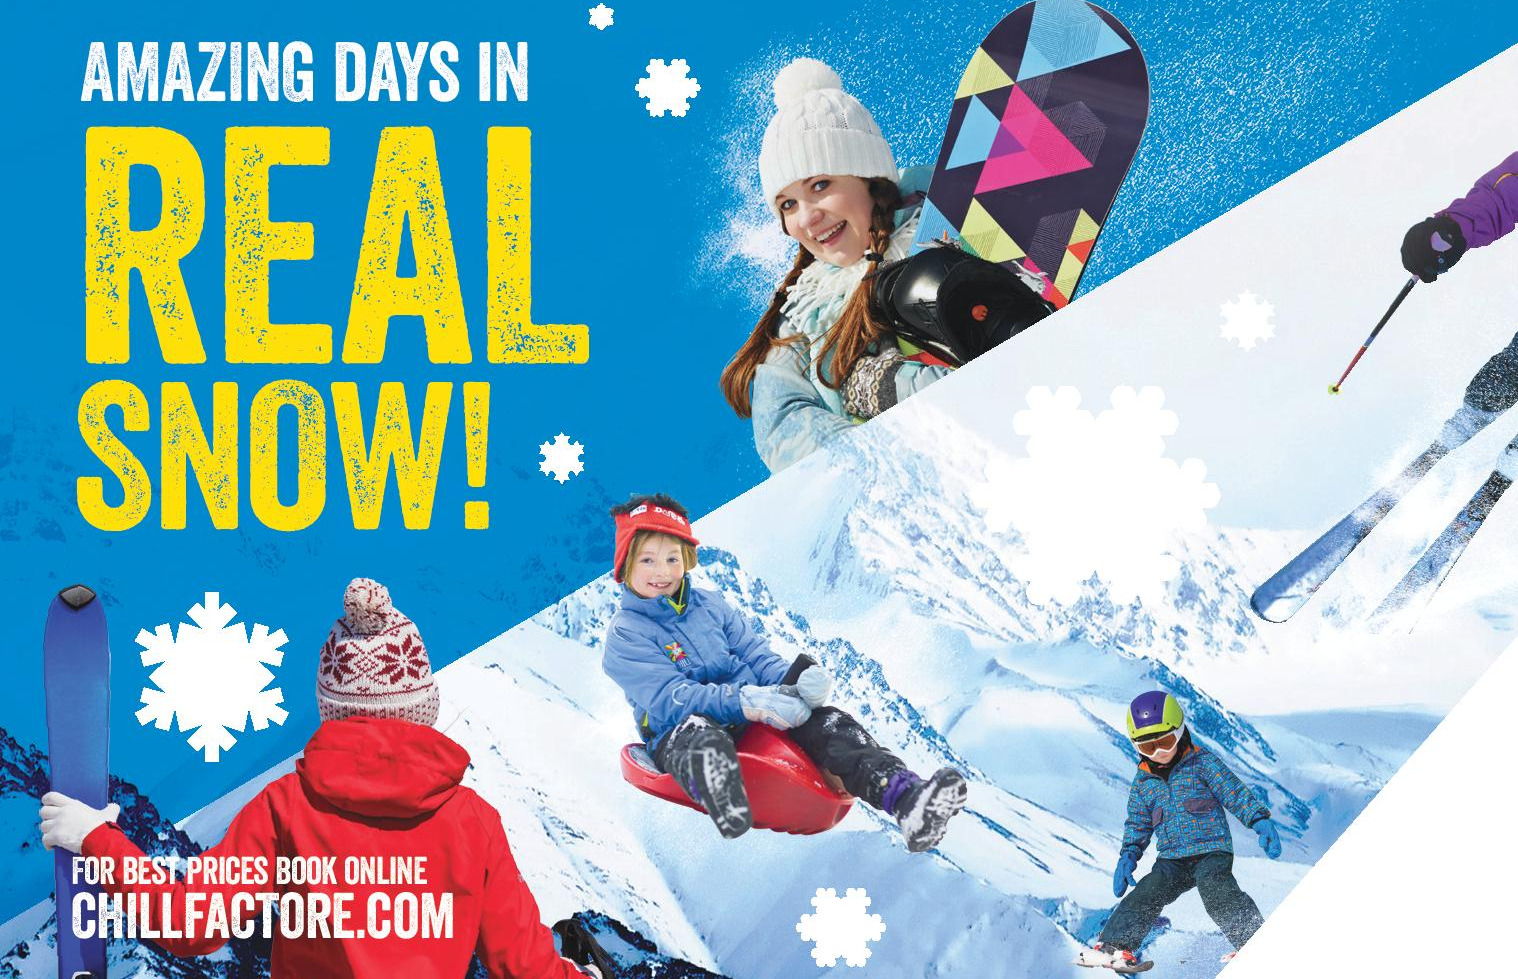 Chill Factore - YourDaysOut